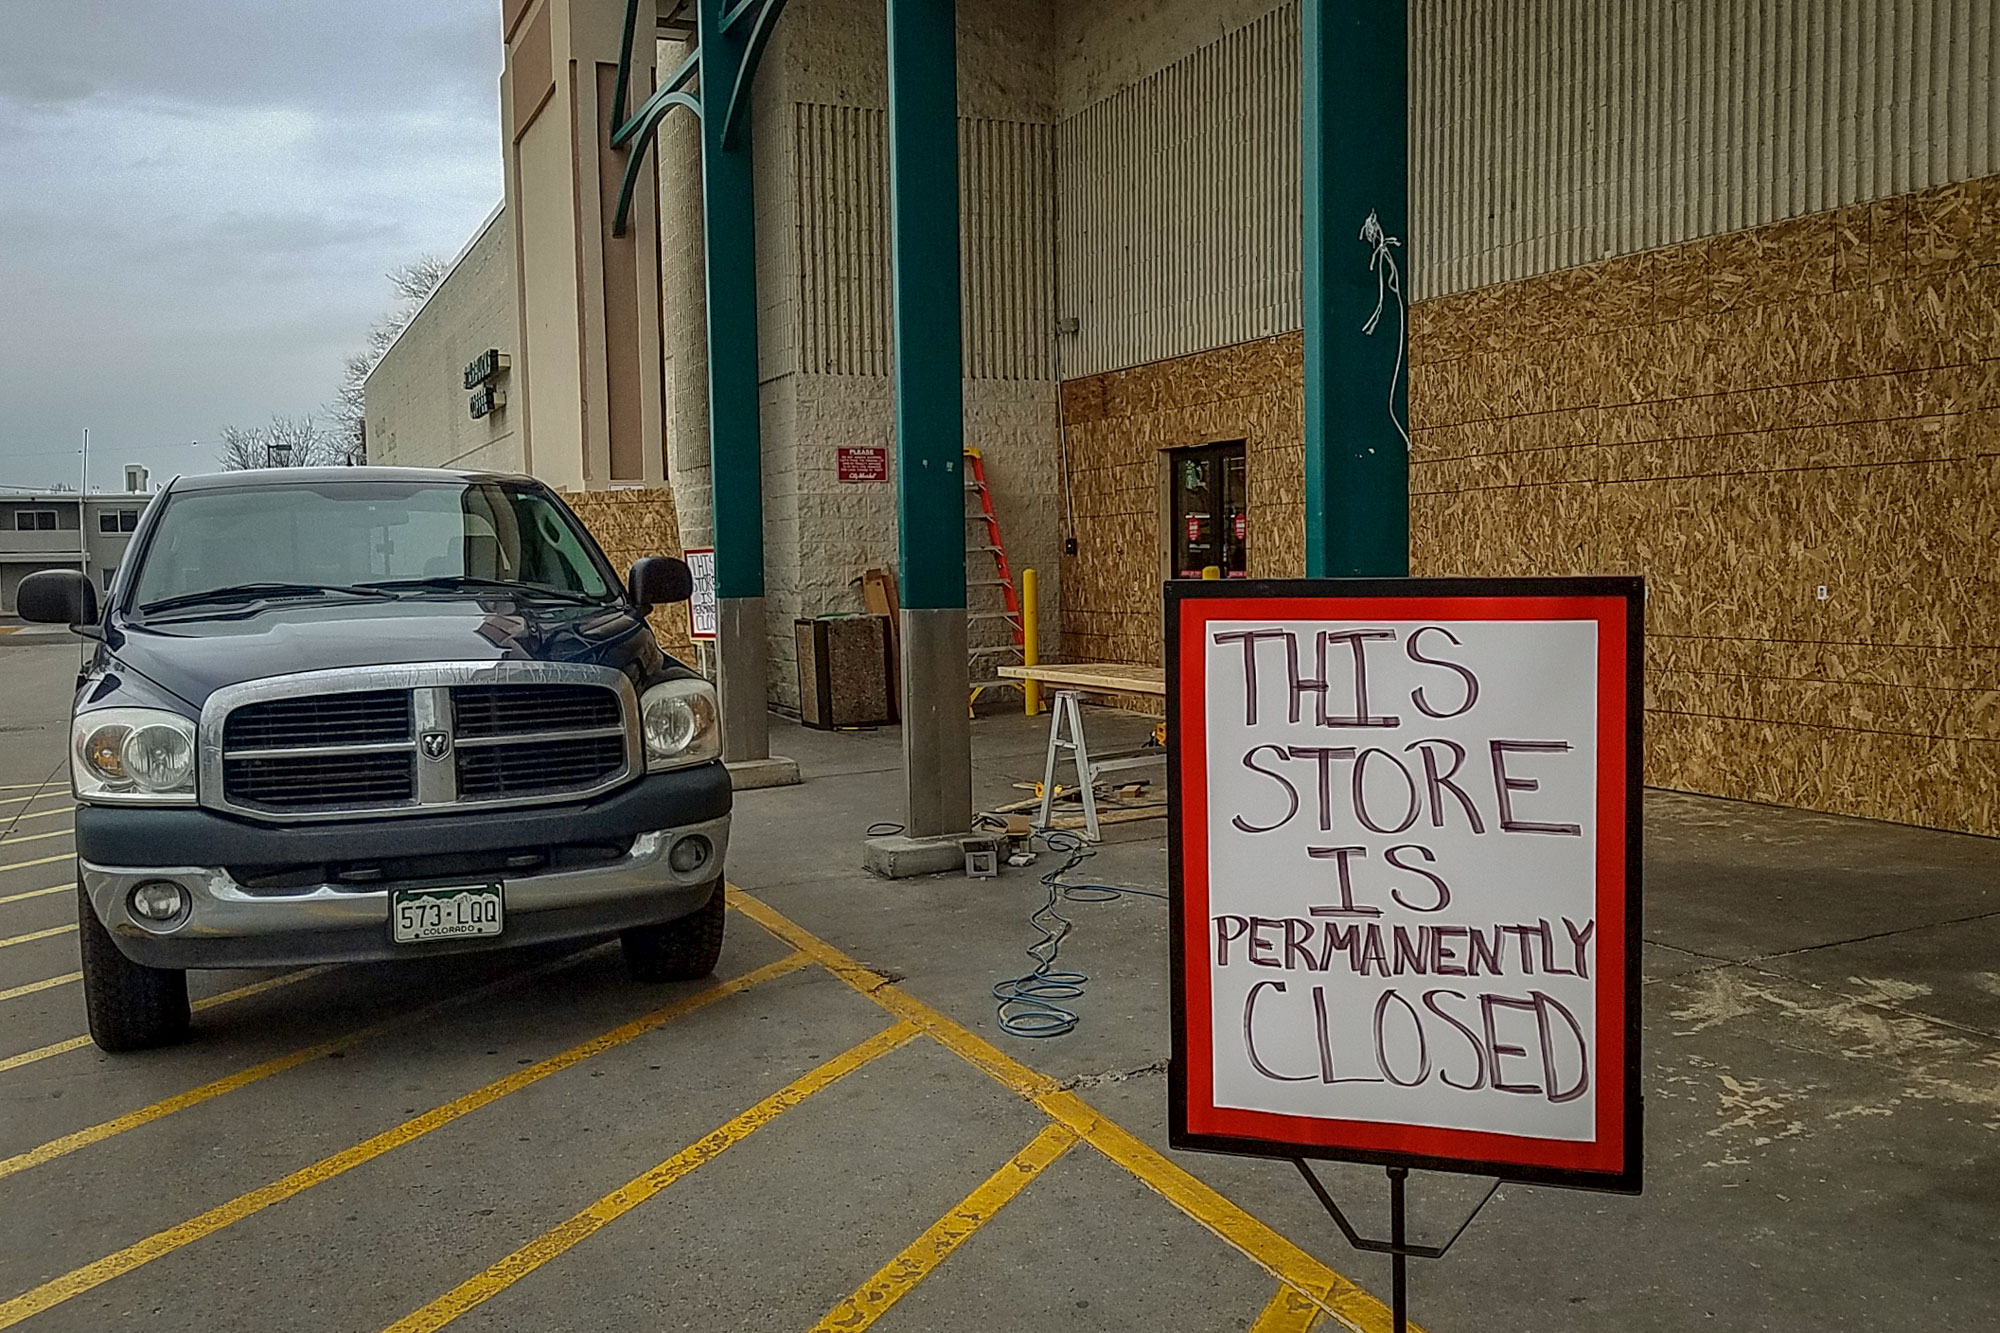 Photo: Downtown Grocery Closes 1 | Closed sign and work truck - RZastrow